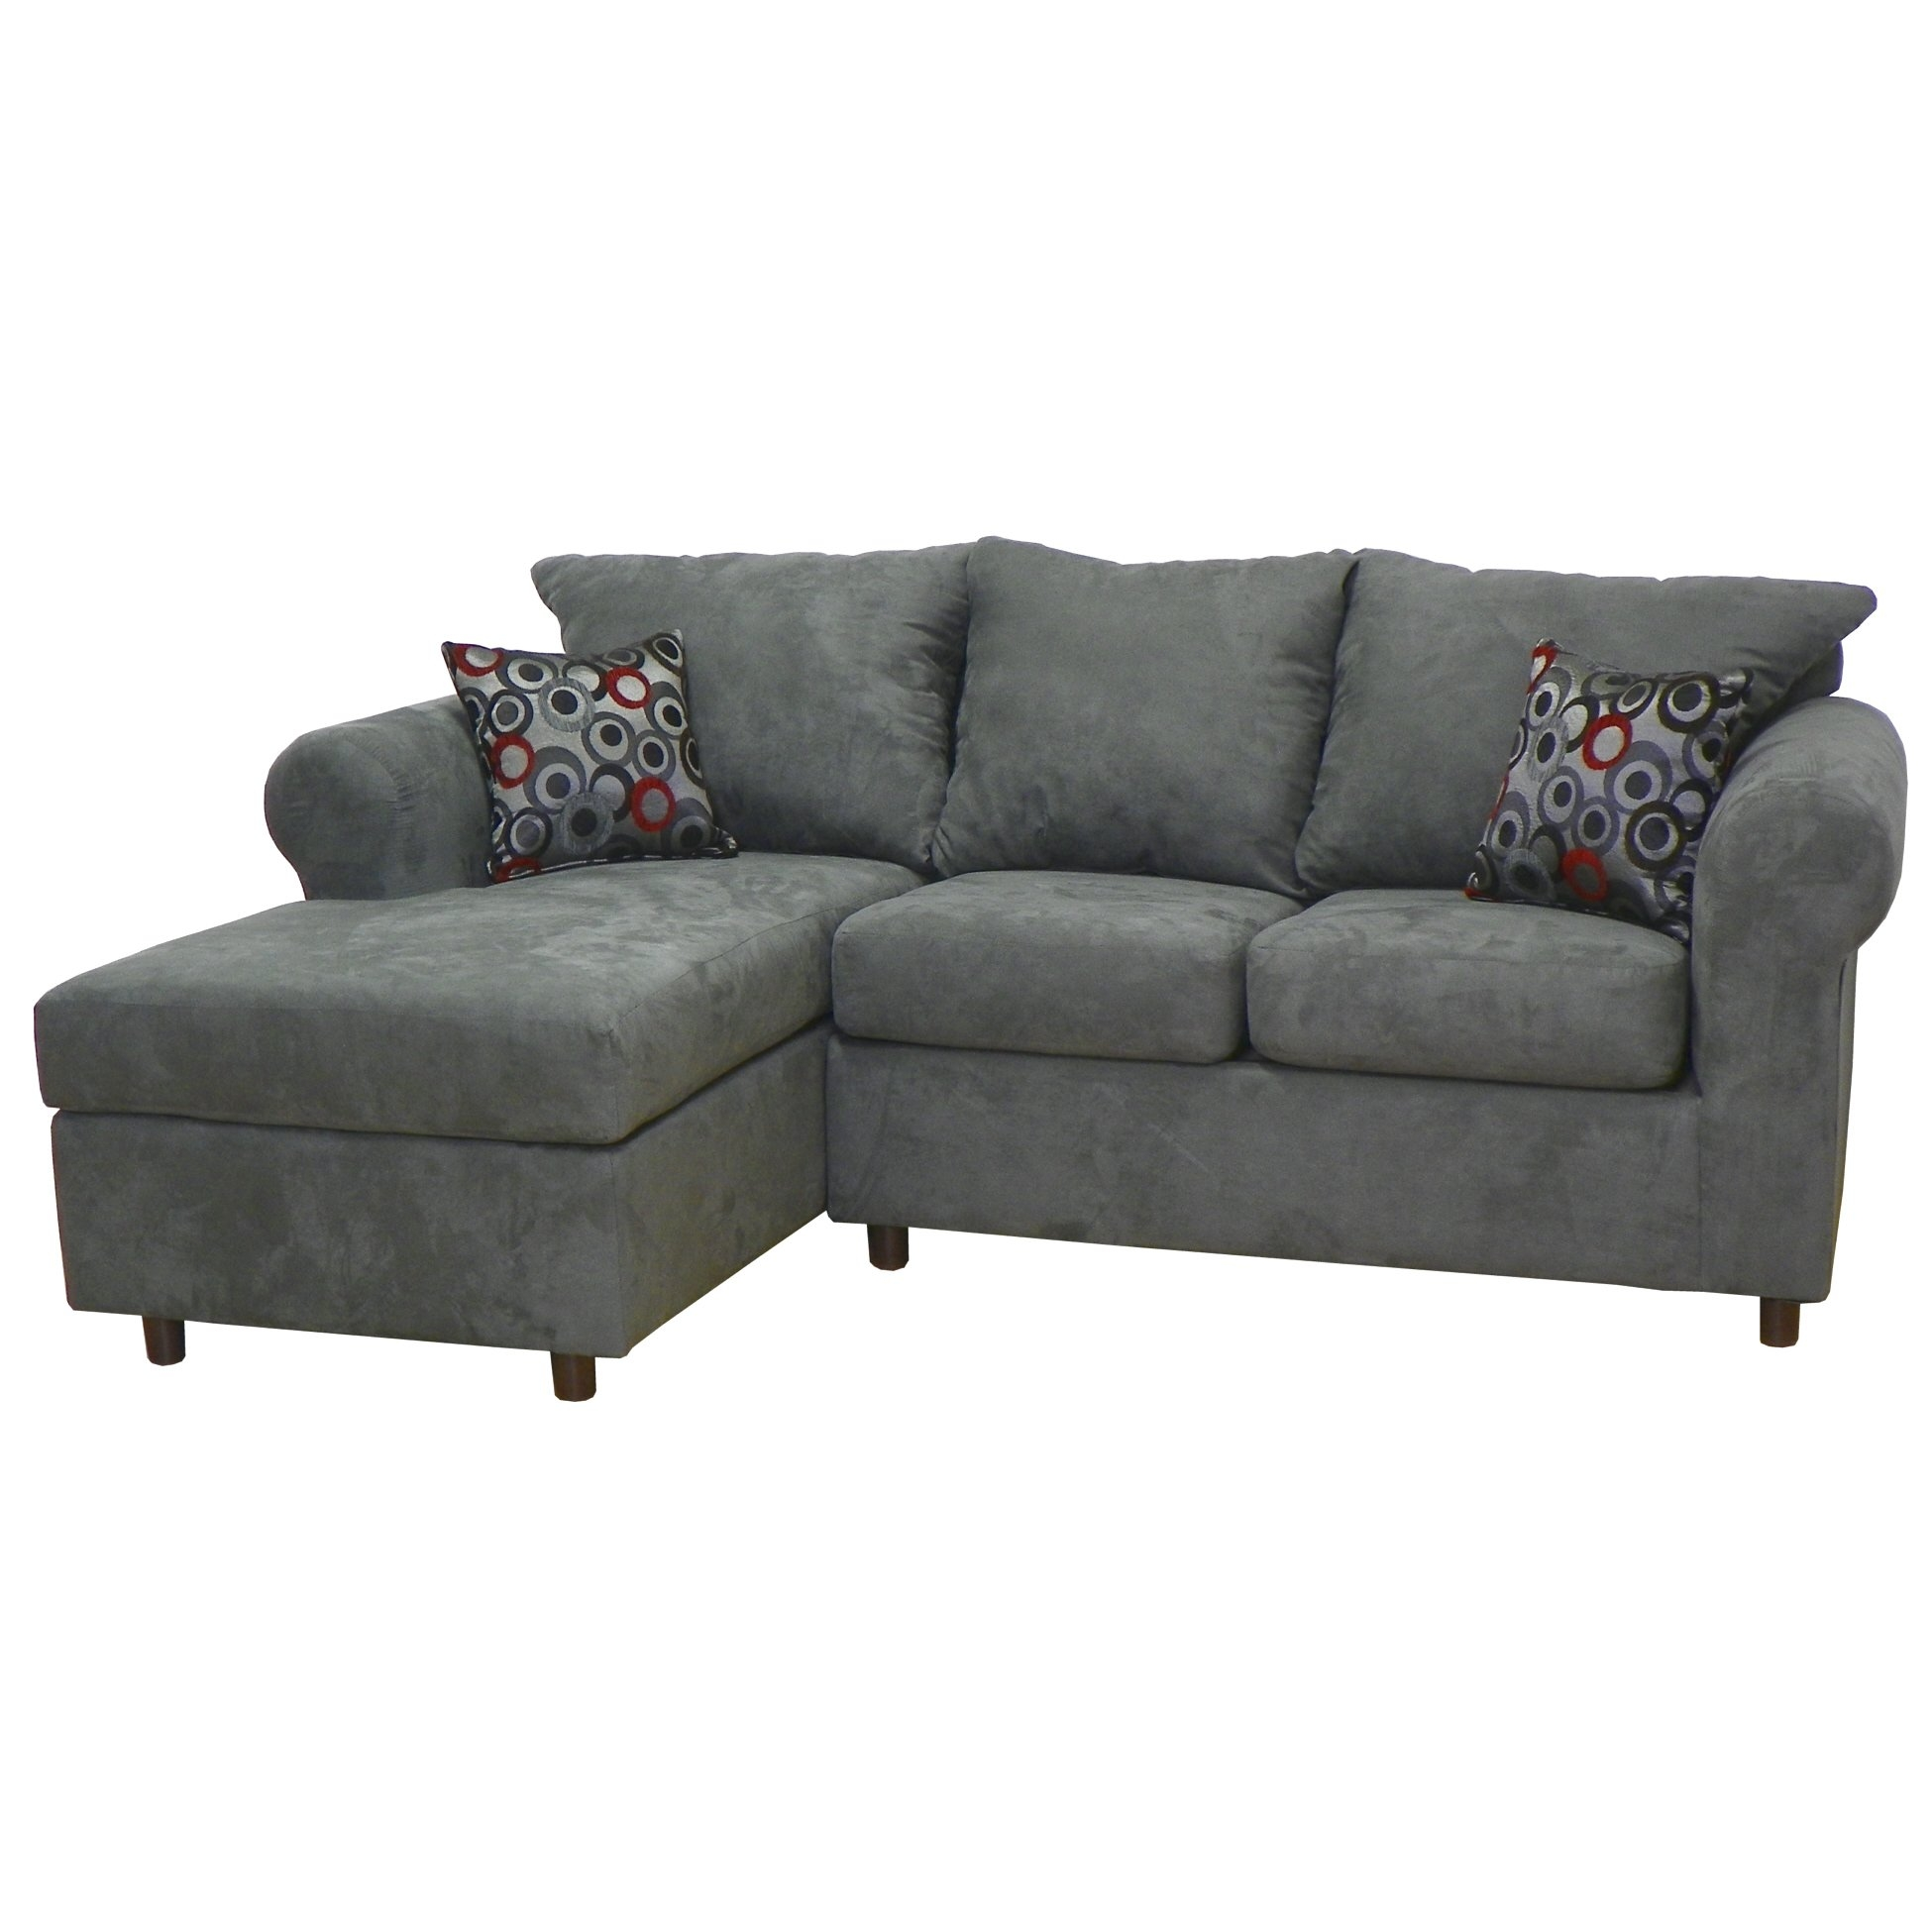 Sectional Sofas Youll Love Wayfair With Curved Sectional Sofa With Recliner (Image 11 of 15)